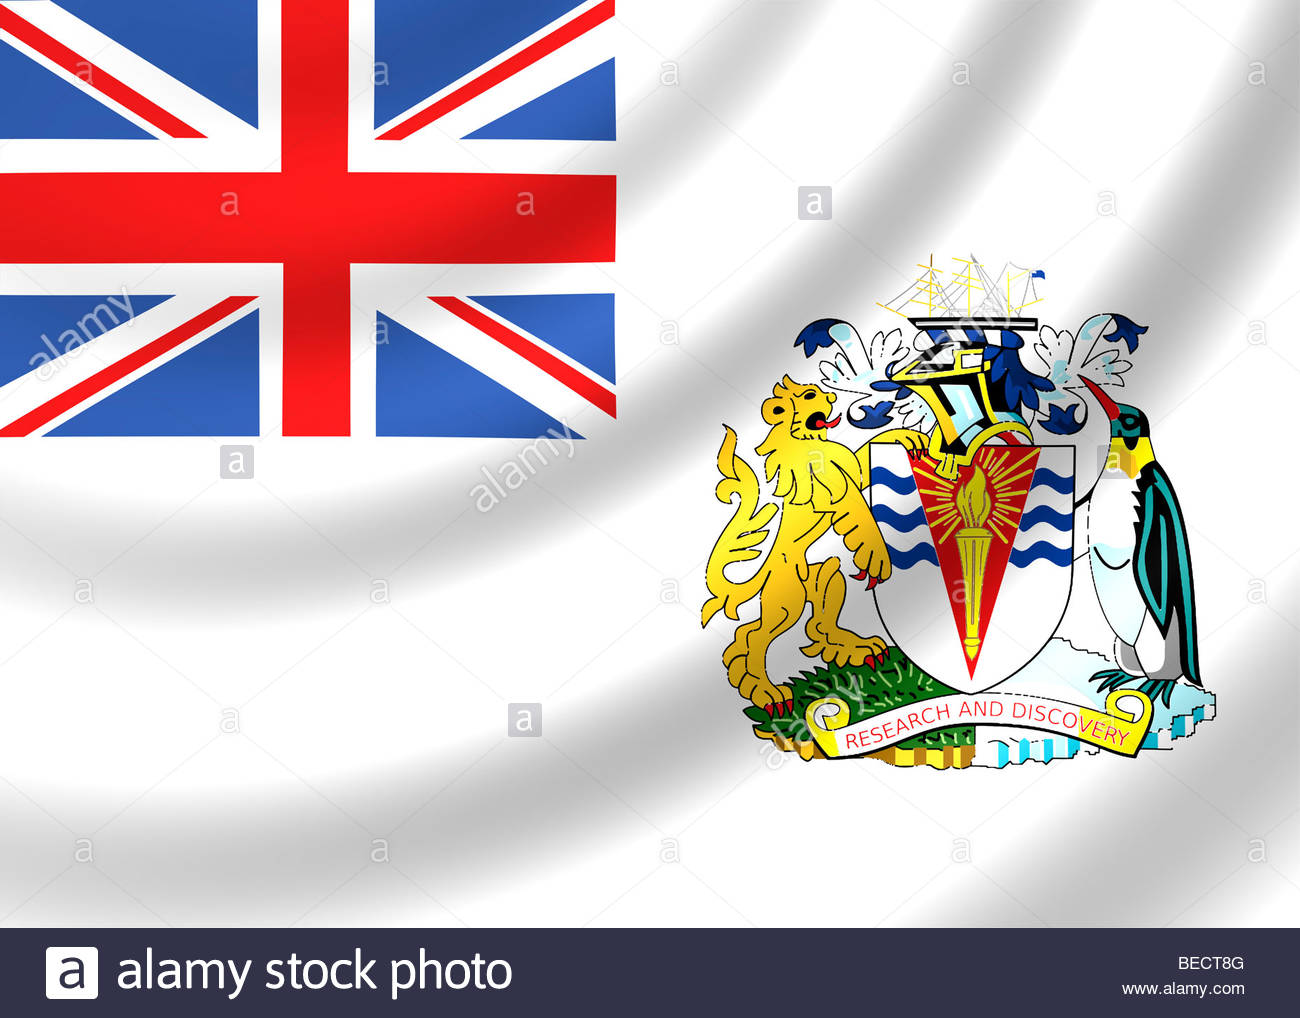 British Antarctic Territory Flag Stock Photo, Royalty Free Image.